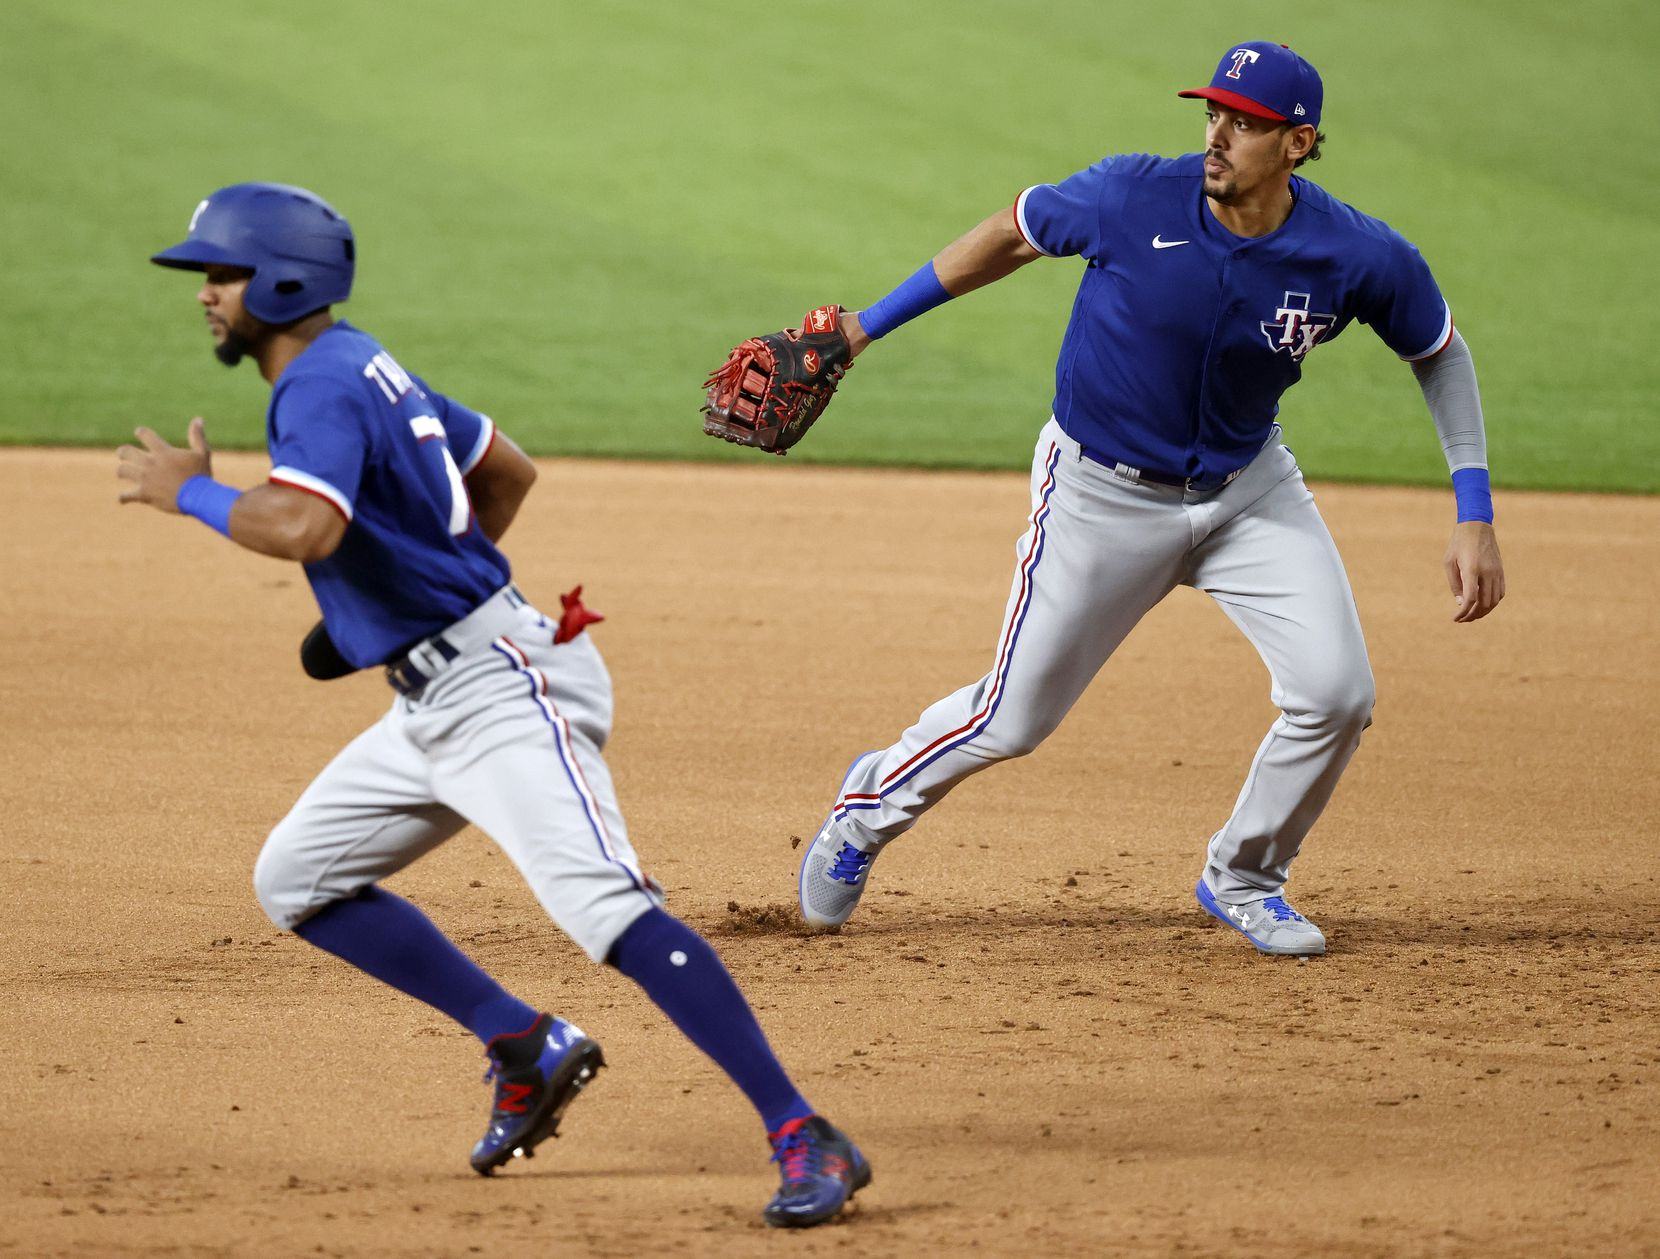 Texas Rangers first baseman Ronald Guzman (right) breaks for the base on an infield hit as Leody Taveras runs to second during an intrasquad game at Summer Camp inside Globe Life Field in Arlington, Texas, Friday, July 10, 2020. (Tom Fox/The Dallas Morning News)